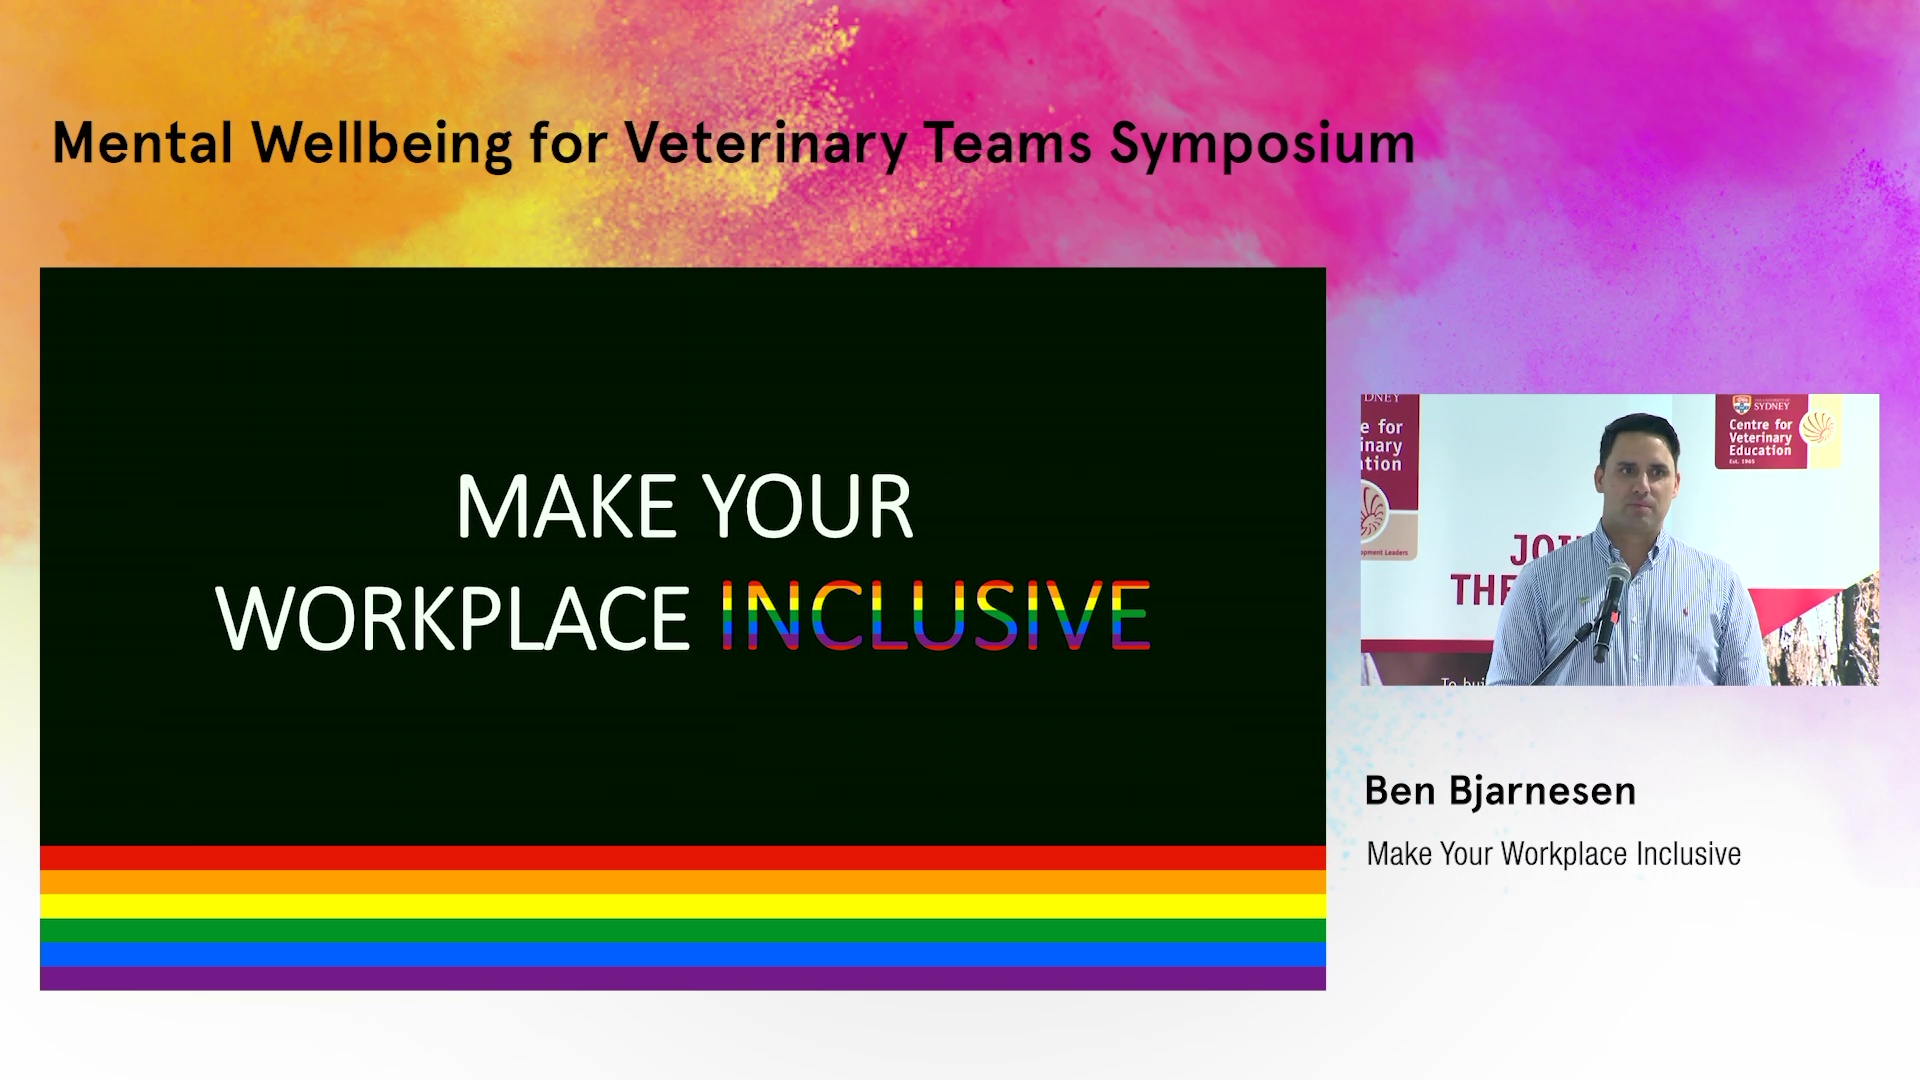 Make Your Workplace Inclusive